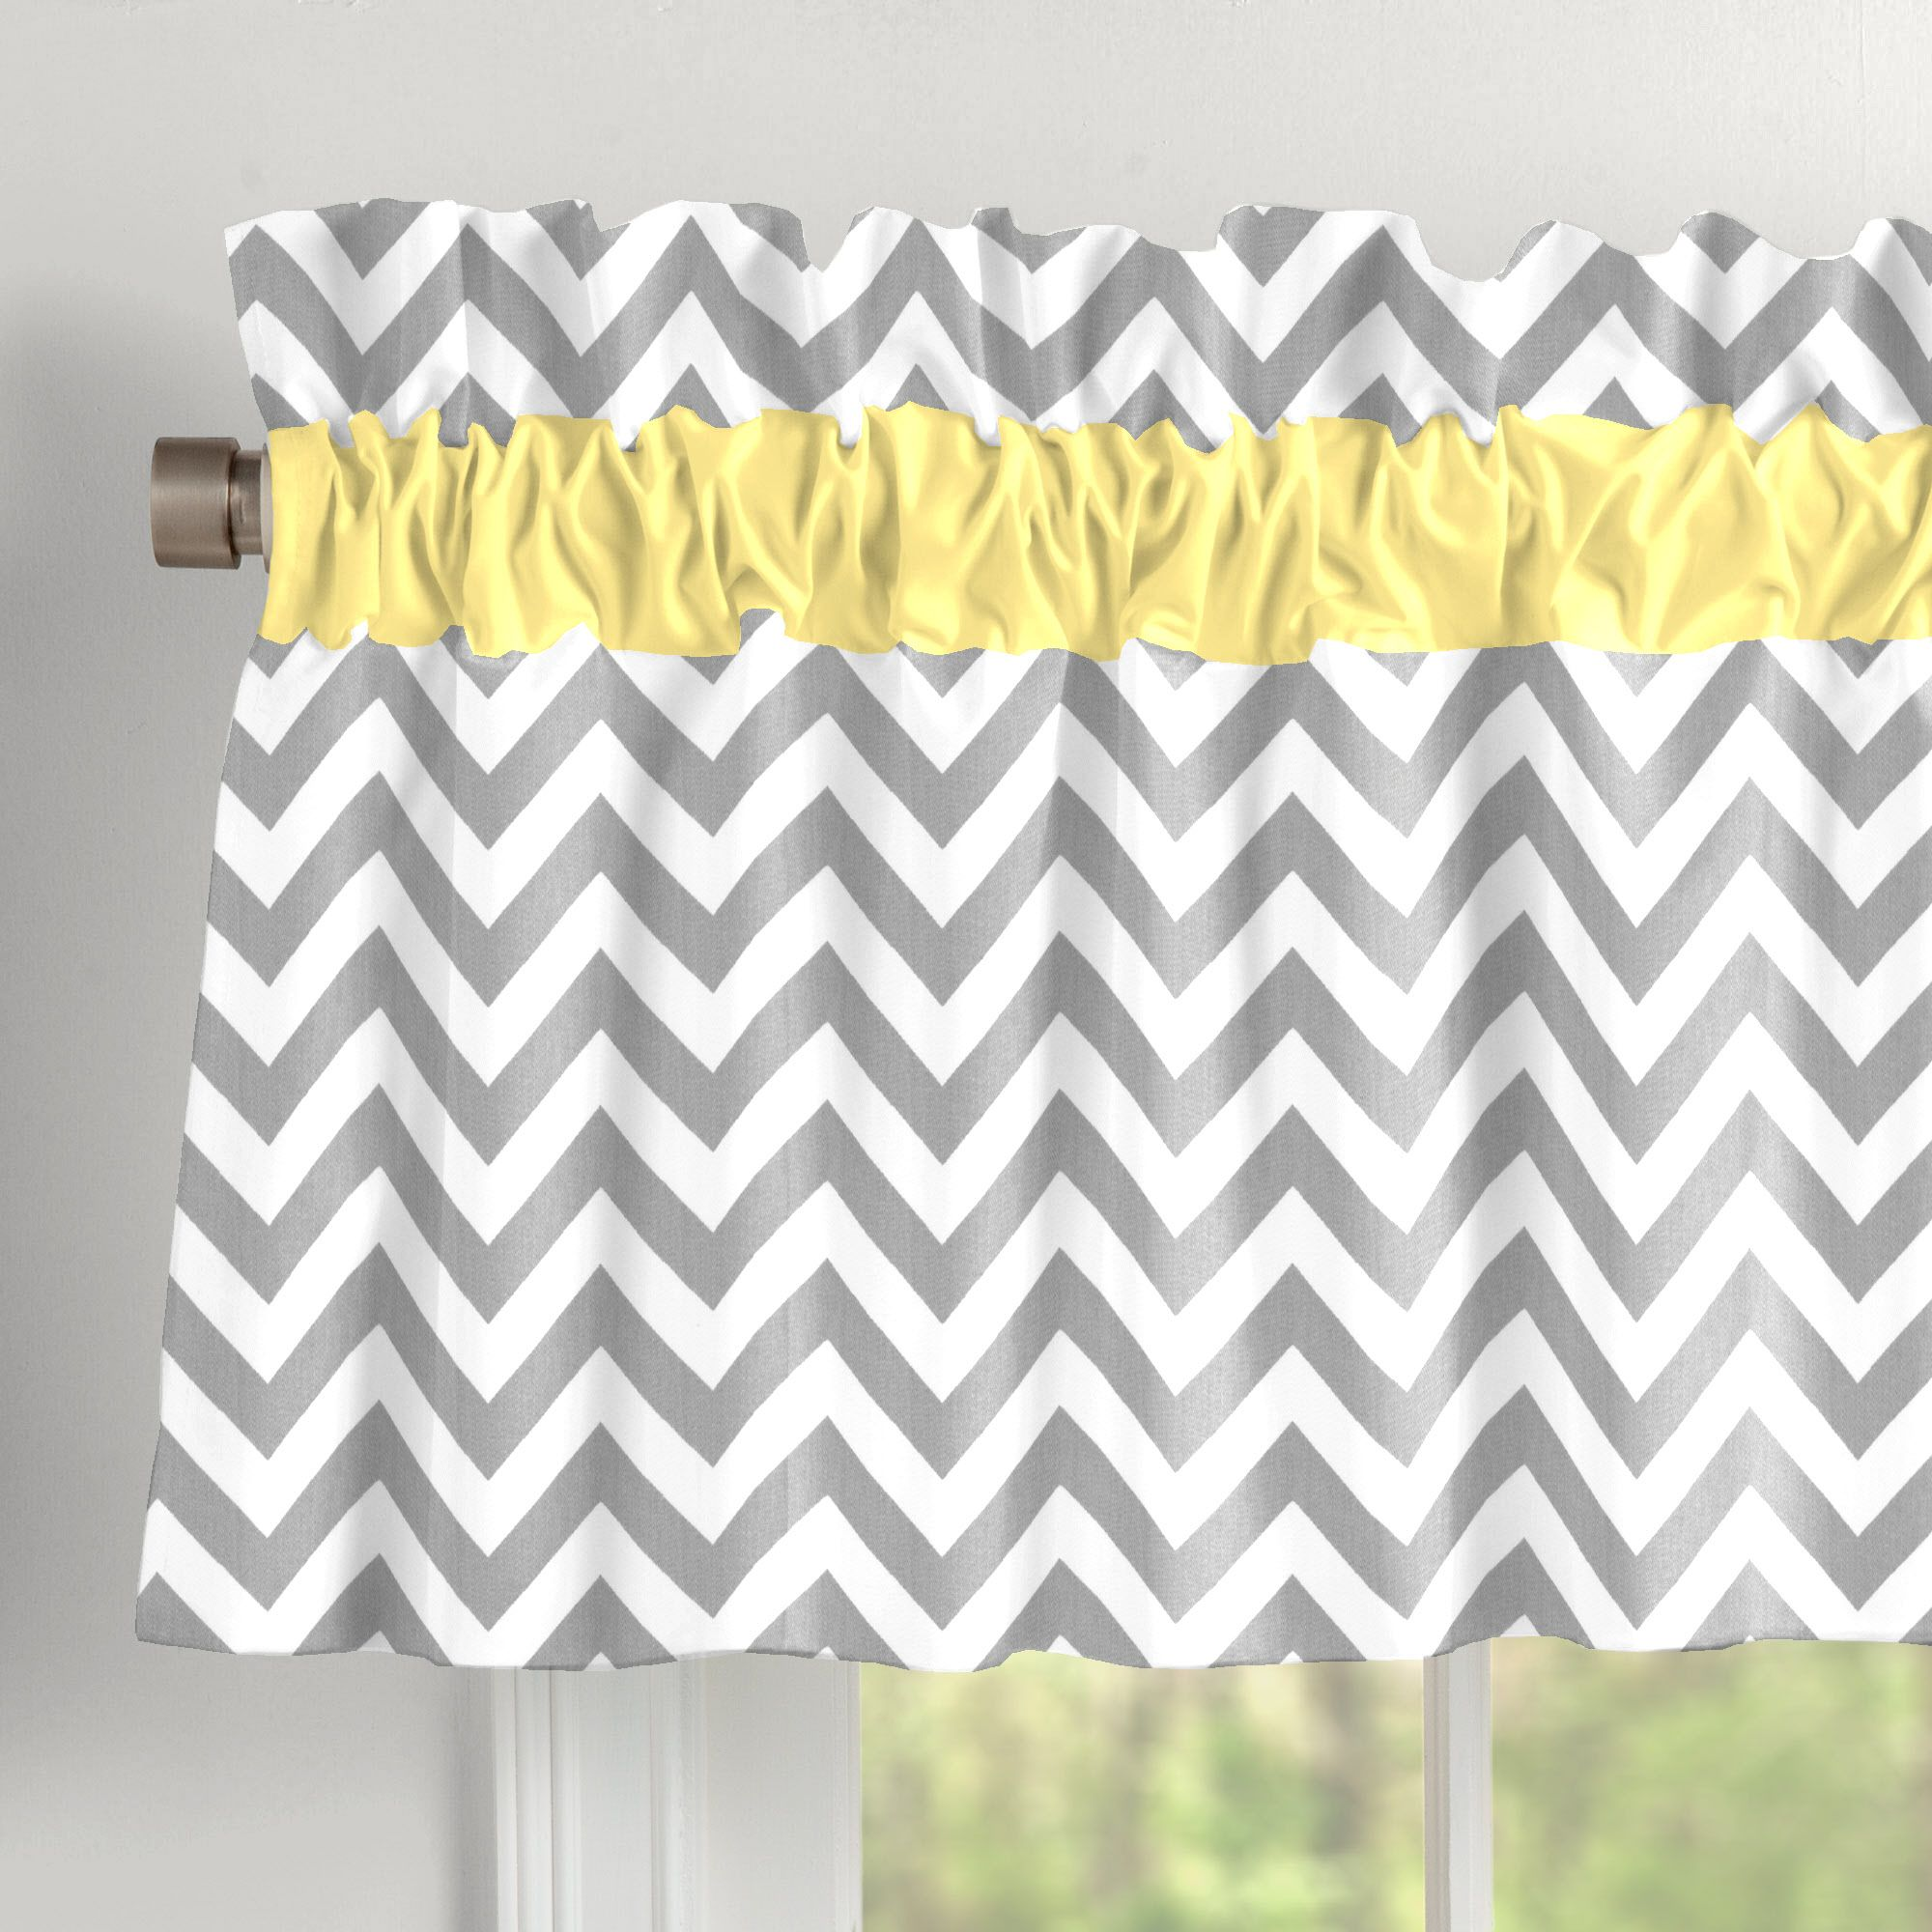 Gray And Yellow Zig Zag Window Valance Rod Pocket